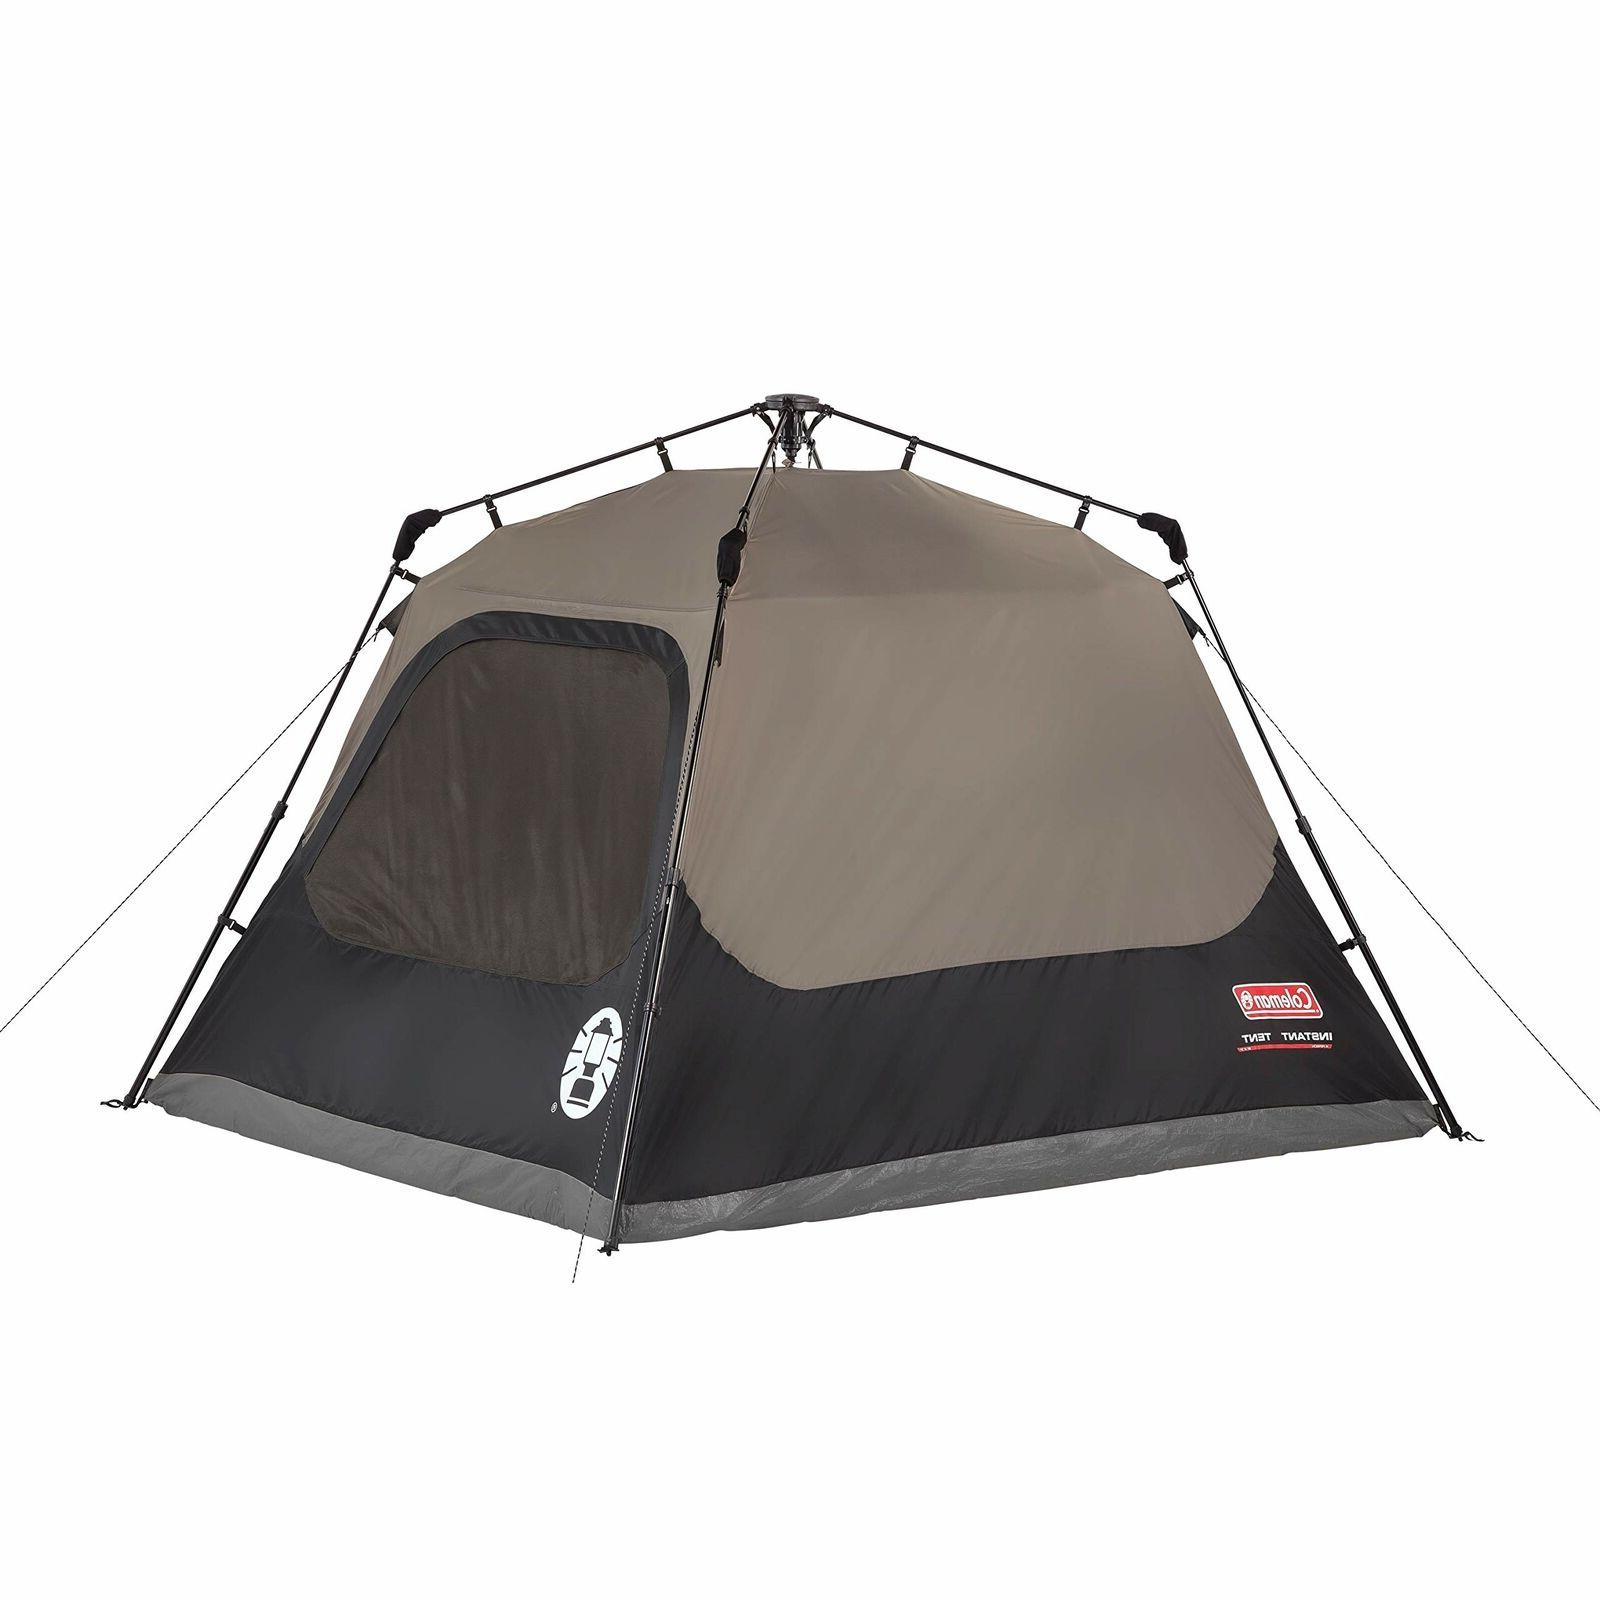 Coleman 4-Person Tent with Instant Setup Camping Up 60